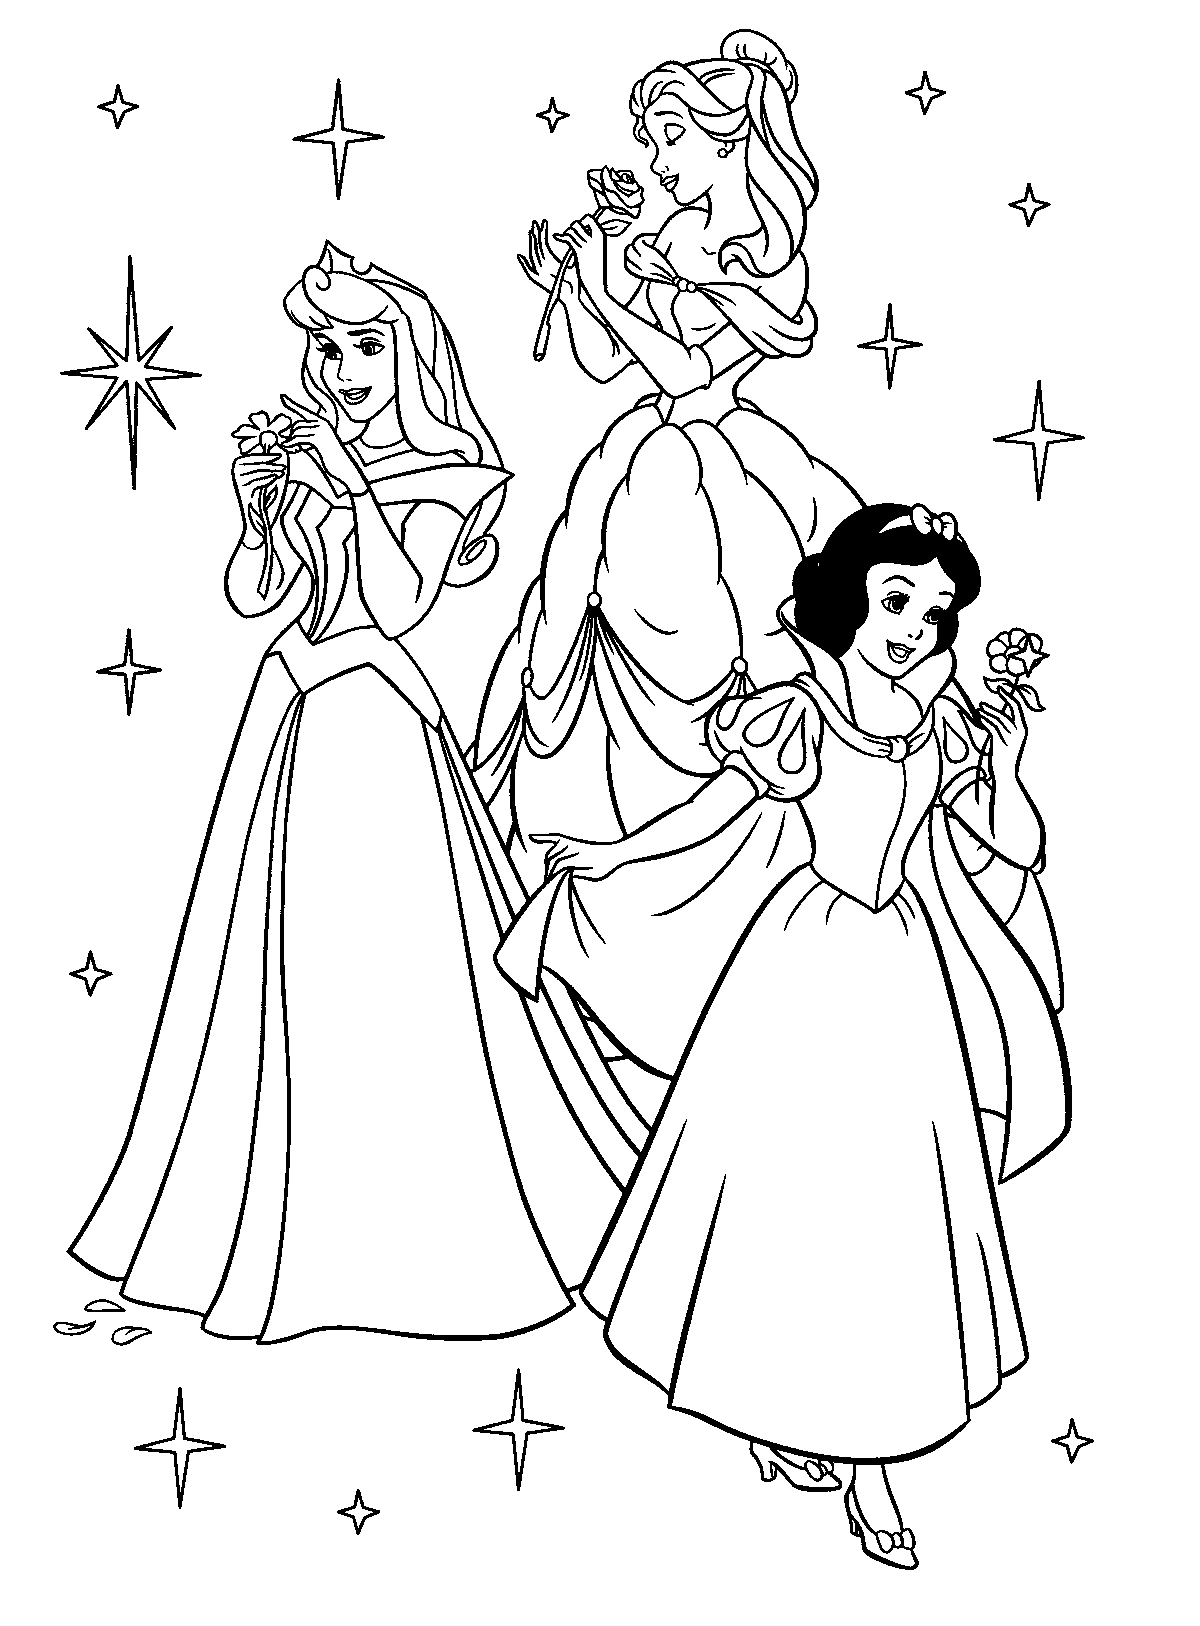 Princess Coloring Pages 6 Coloring Kids Princess Coloring Pages